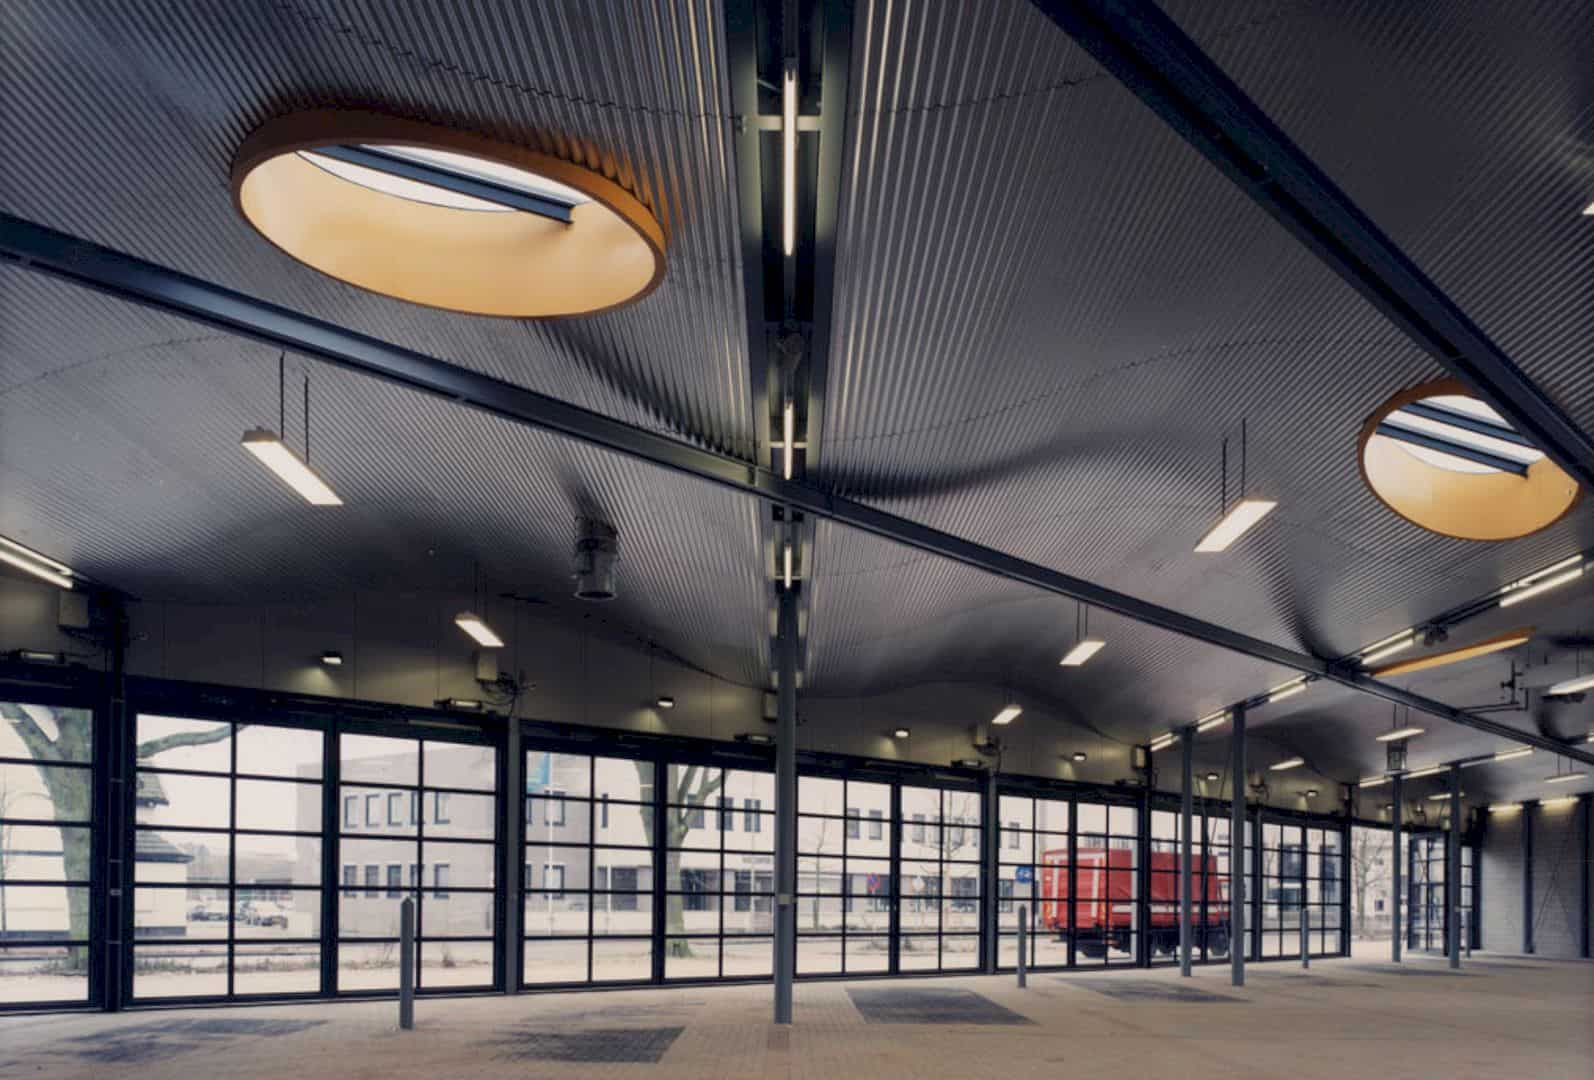 Fire Station Apeldoorn By Jeanne Dekkers Architectuur 10